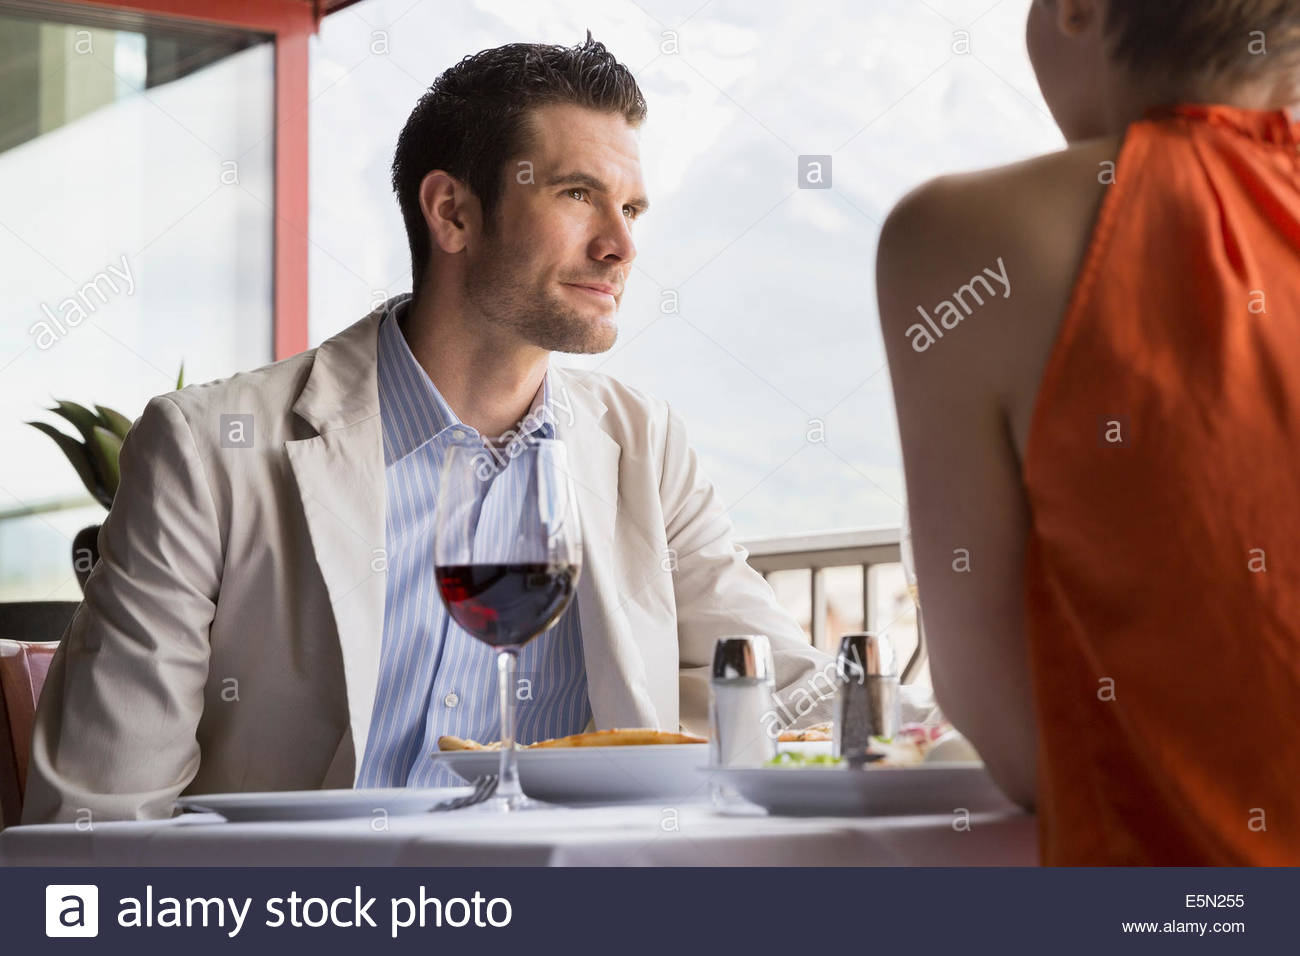 Couple at restaurant table Stock Photo